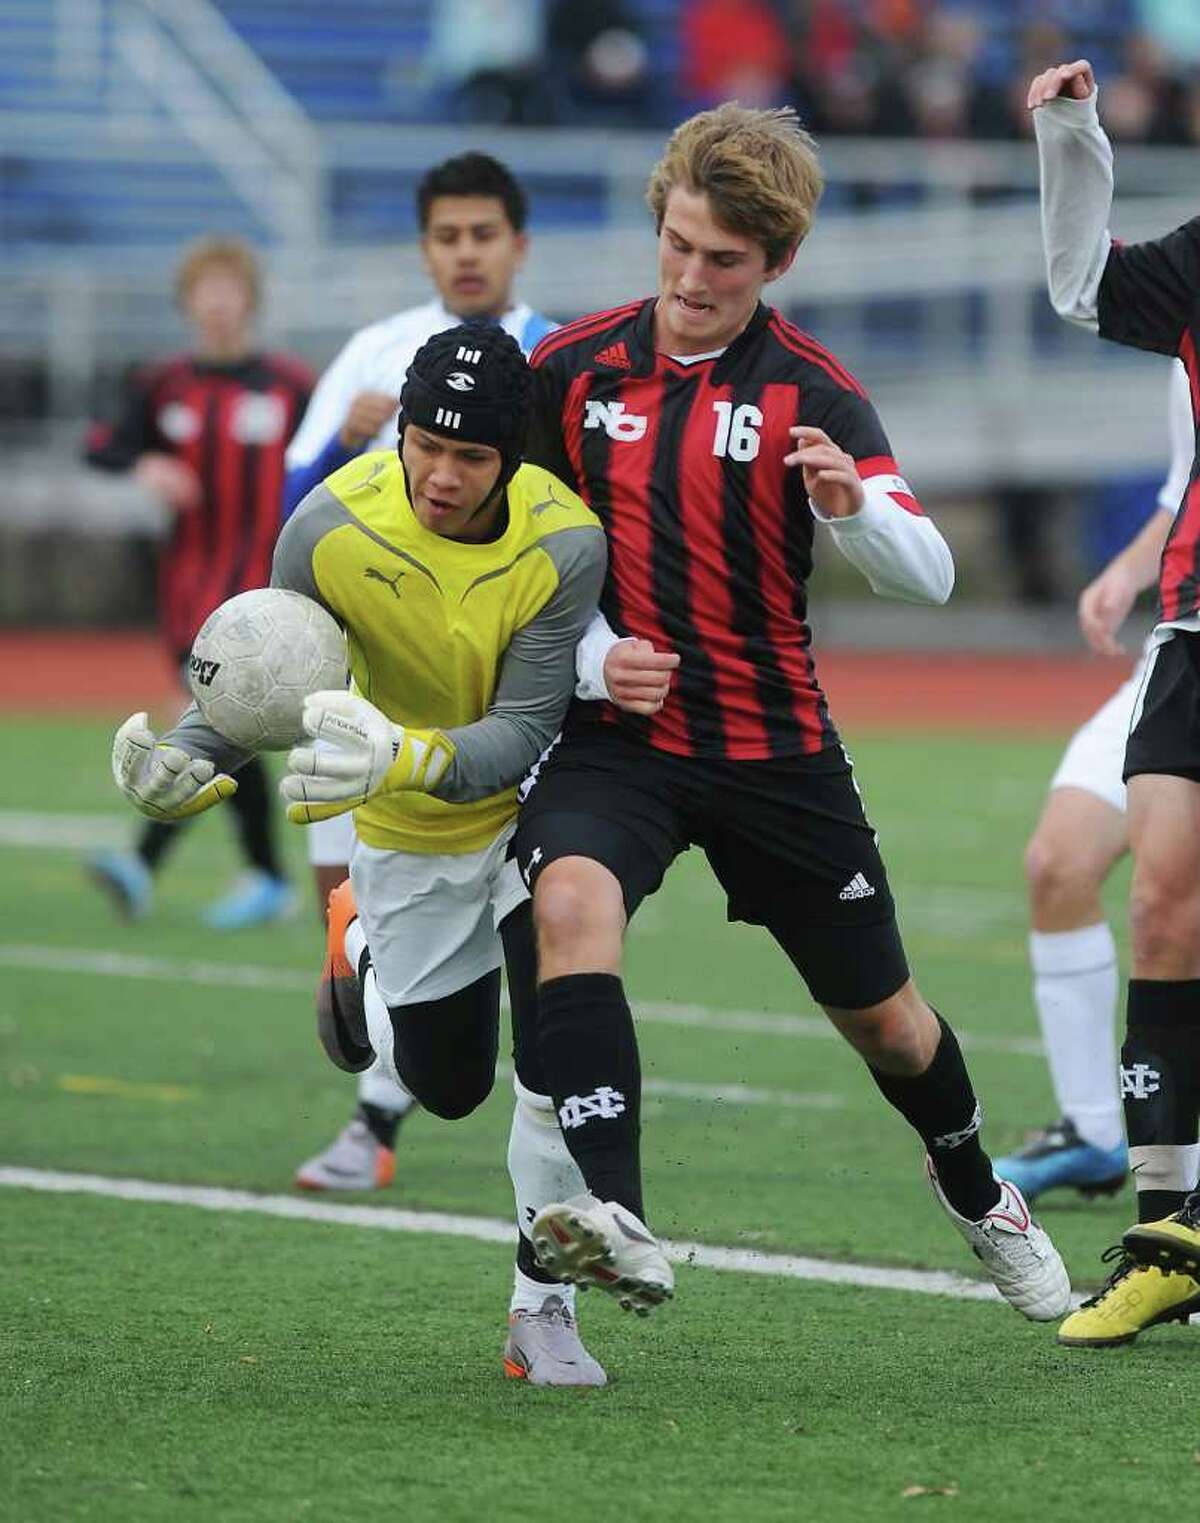 Bunnell's goalkeeper Christopher Fazekas makes a save against New Canaan's Scott O'Brien in the Class L boys soccer championship match at Fairfield Ludlowe High School in Fairfield, Conn. on Saturday November 20, 2010. New Canaan won the game 2-0.